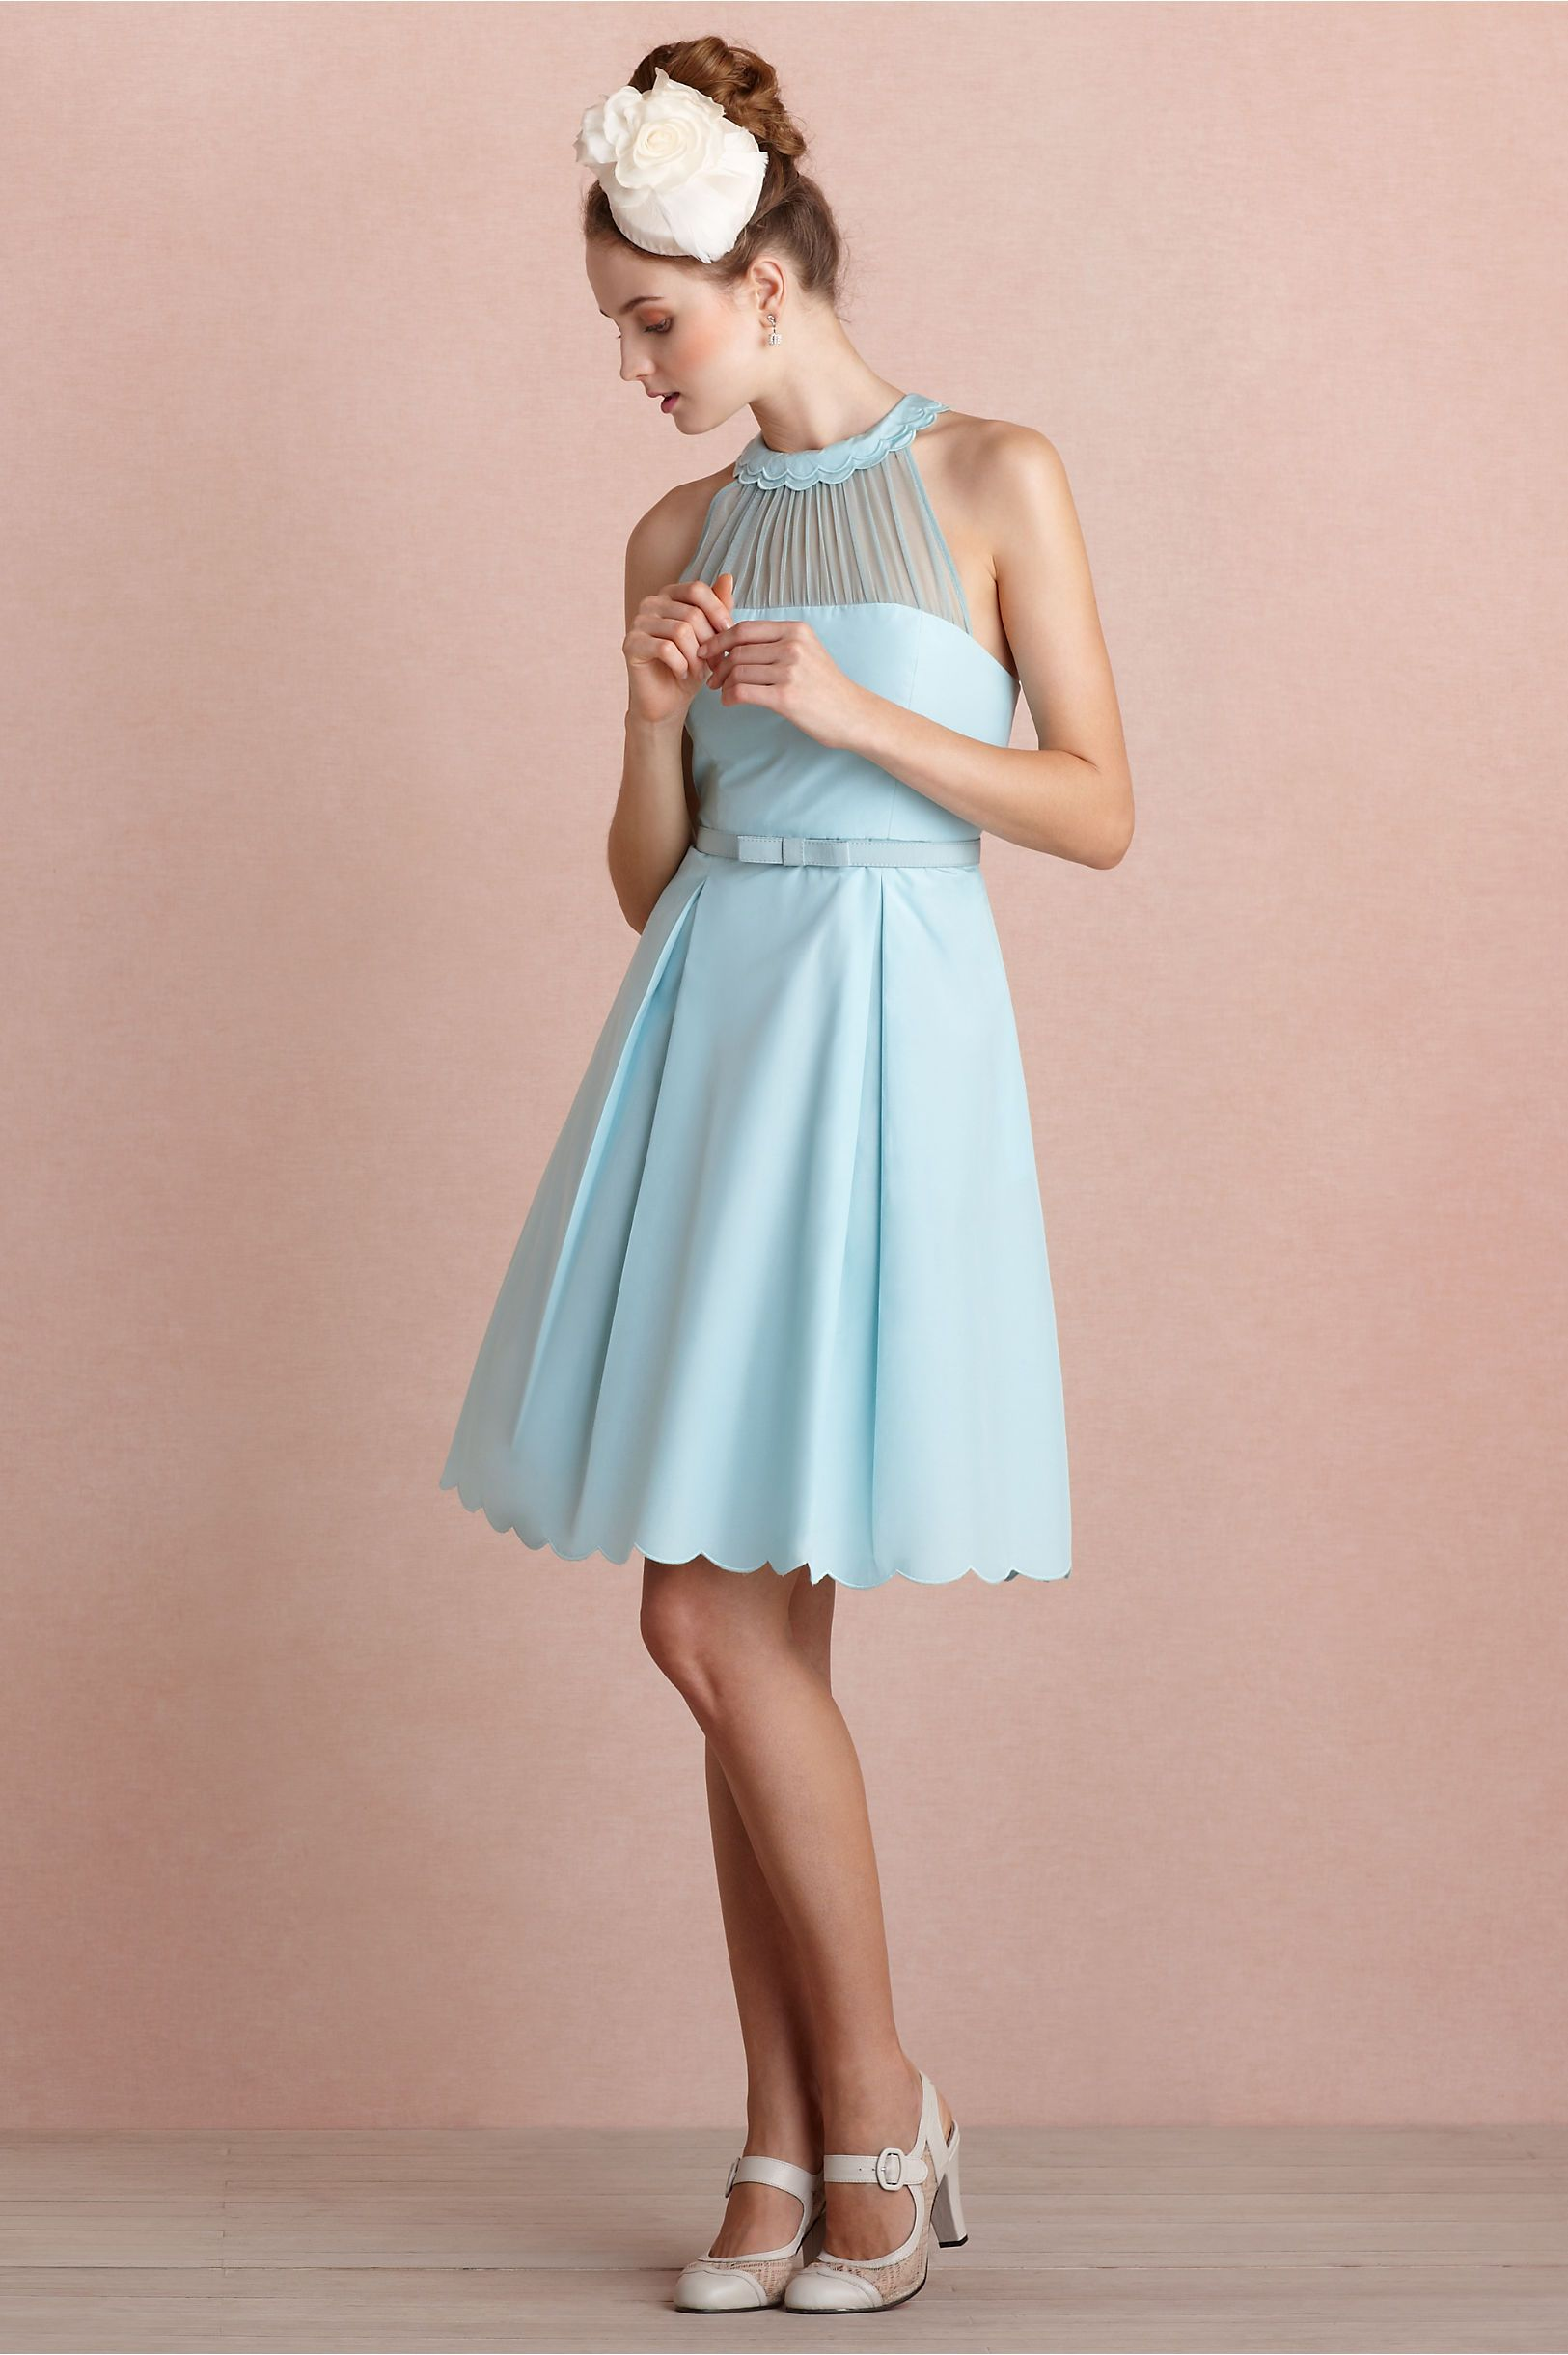 Horizon Dress in SHOP Bridesmaids & Partygoers Dresses at BHLDN ...